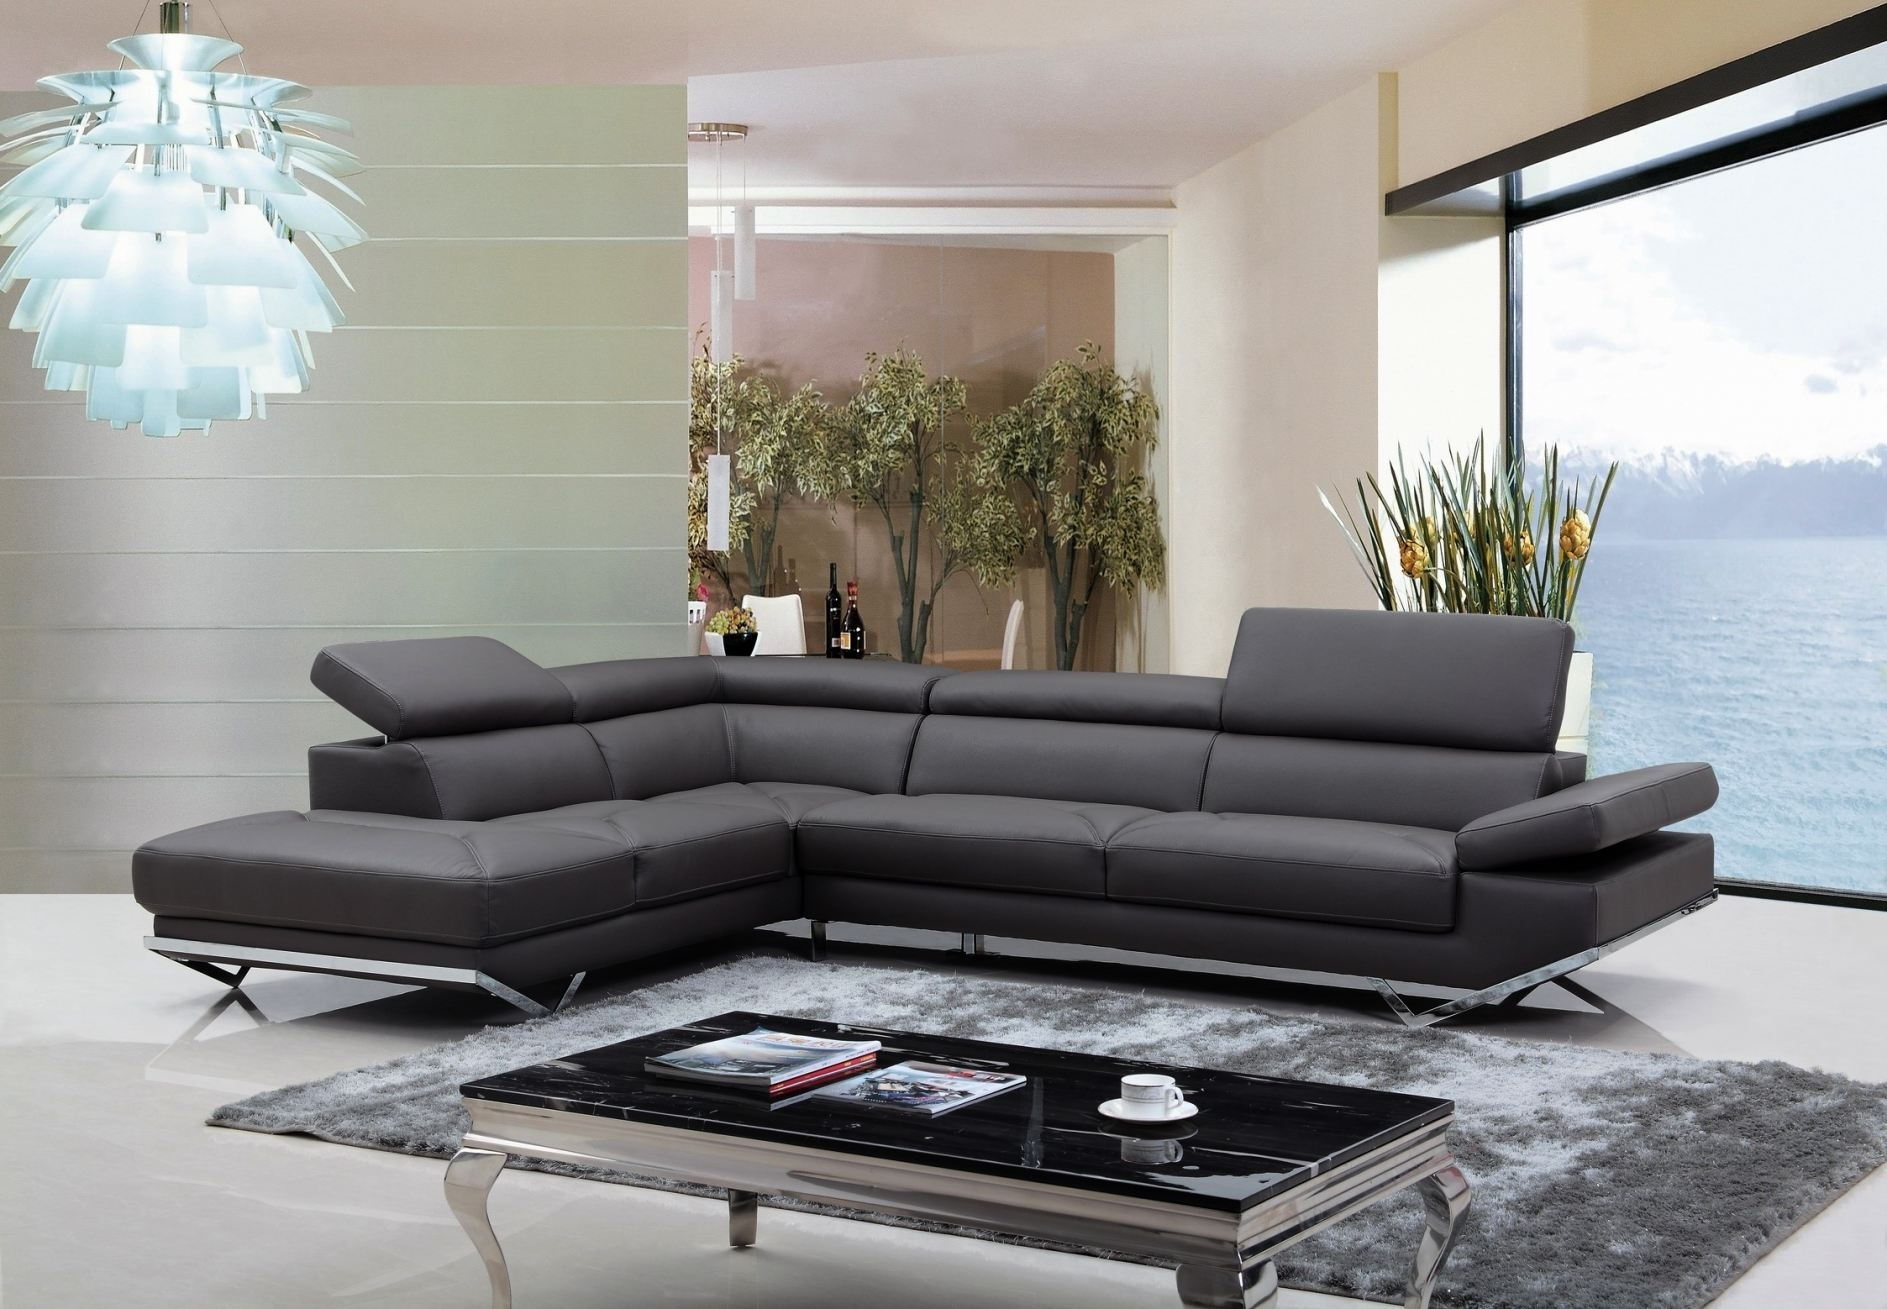 Contemporary Leather Sofas Italian Sofa Uk Modern Furniture High Inside High Point Nc Sectional Sofas (View 6 of 10)